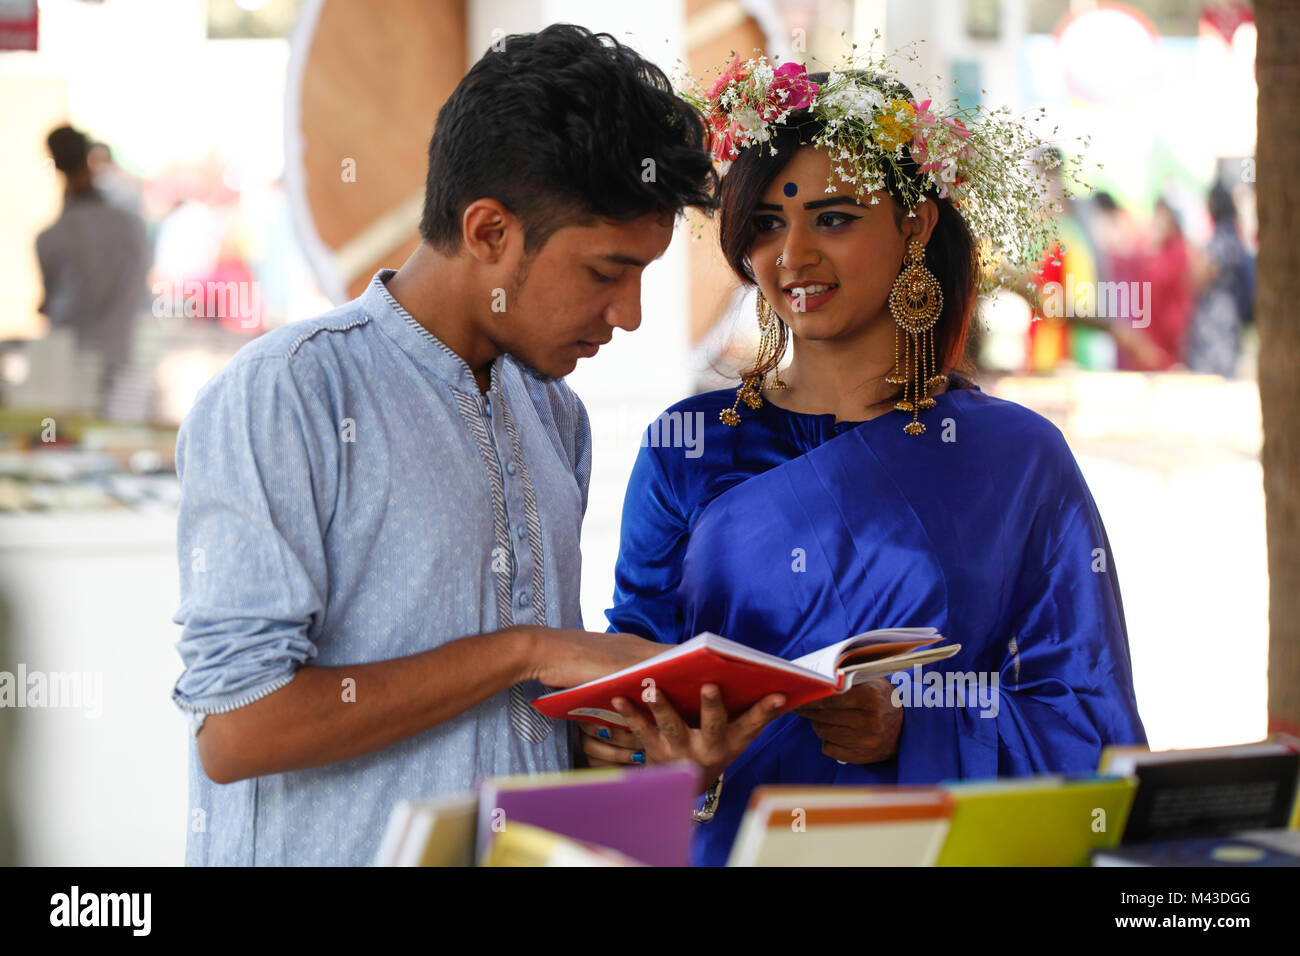 Bangladeshi Couple Pictures